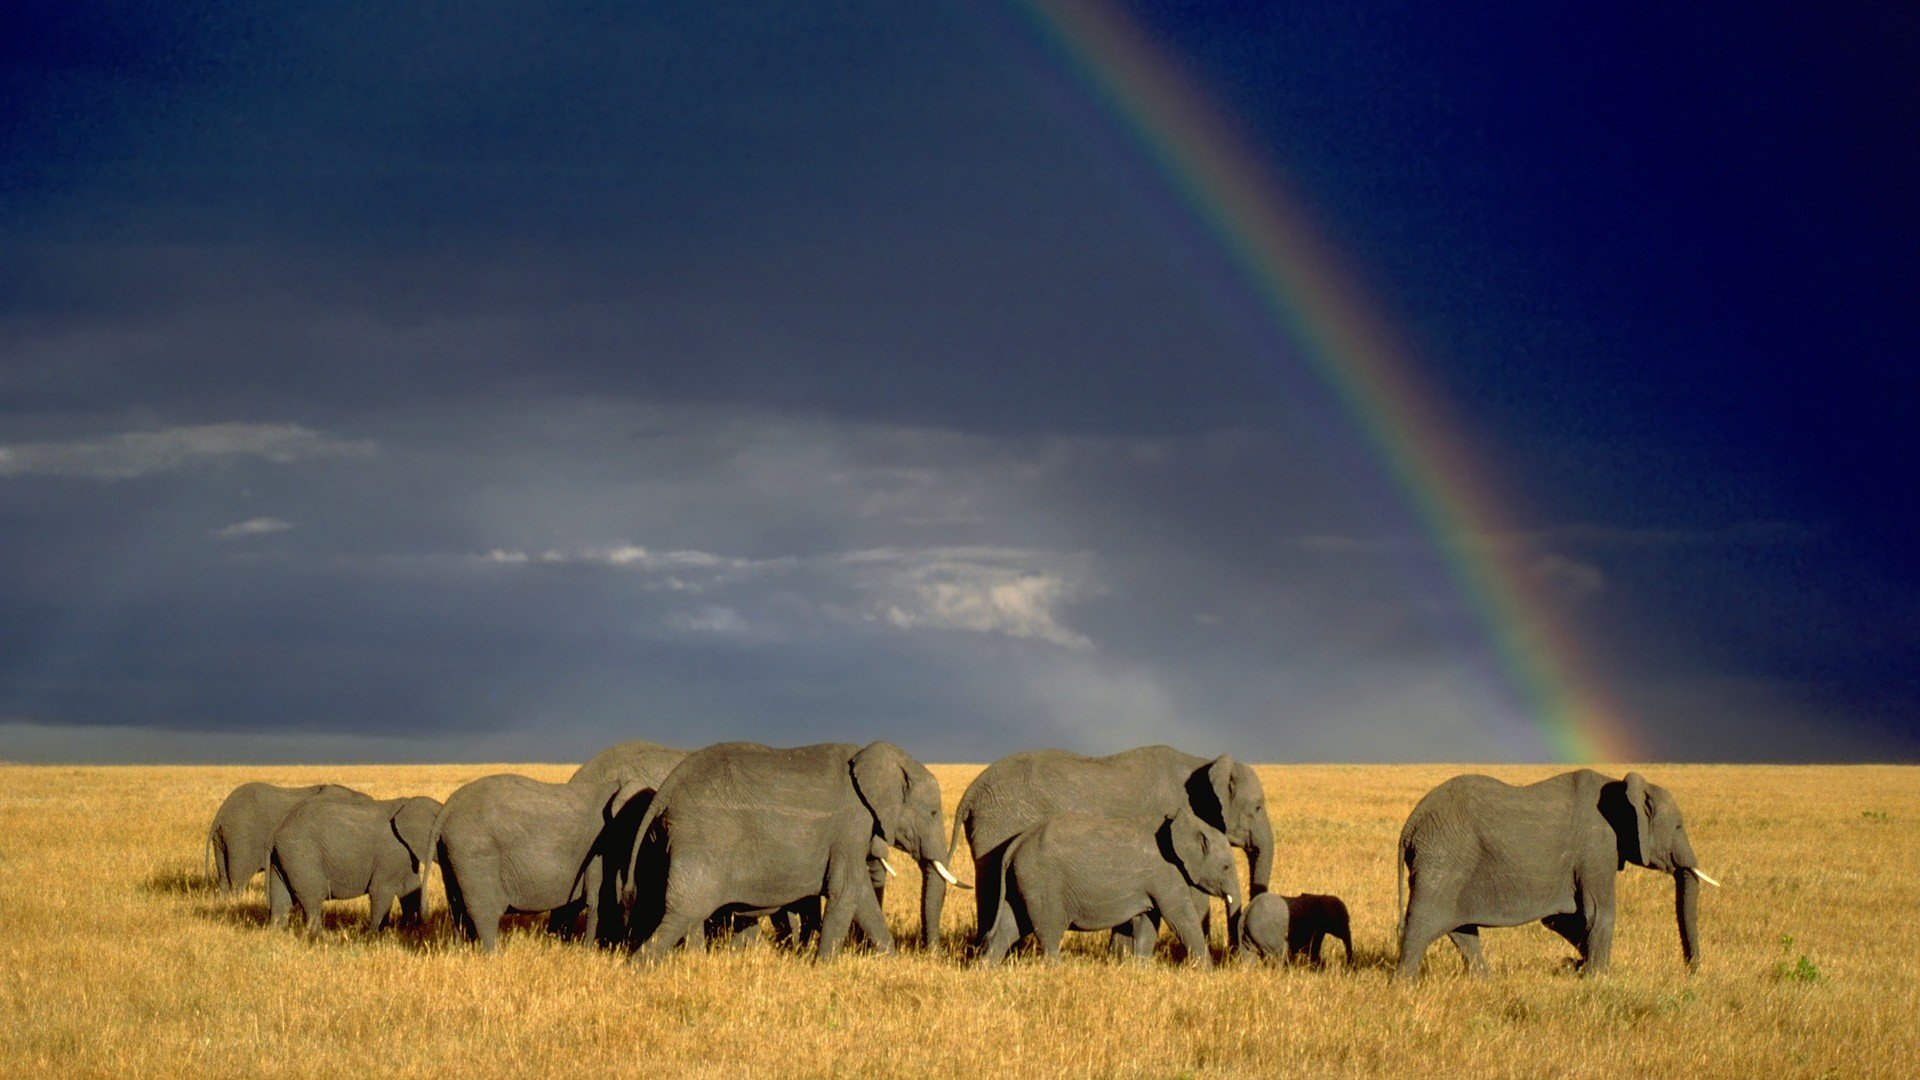 Download hd 1080p Elephant desktop background ID:132777 for free